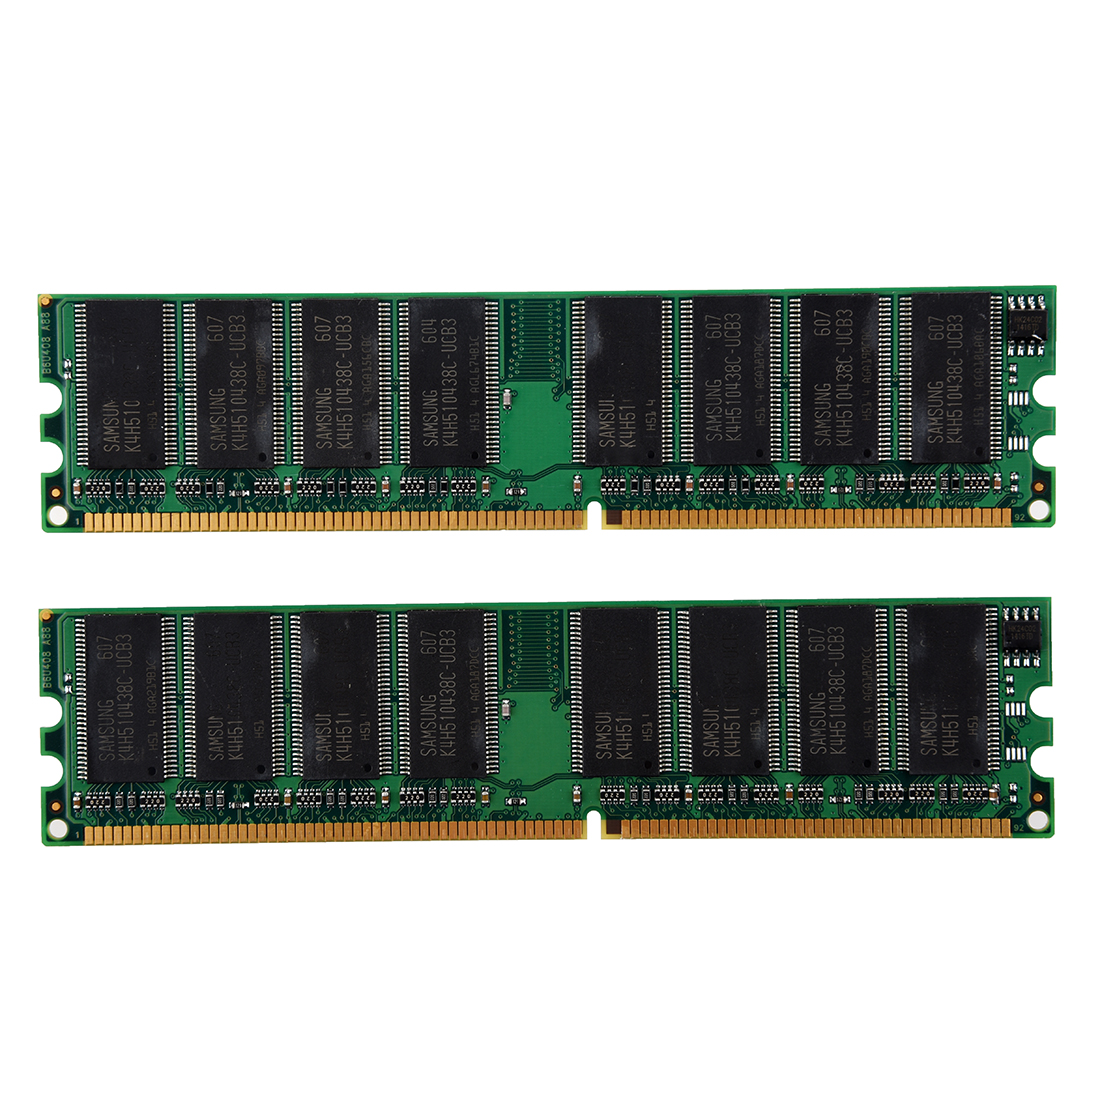 CAA-2GB(2x1GB) DDR 400 MHz PC3200 PC3200U Non-ECC Desktop PC DIMM Memory RAM 184-pin